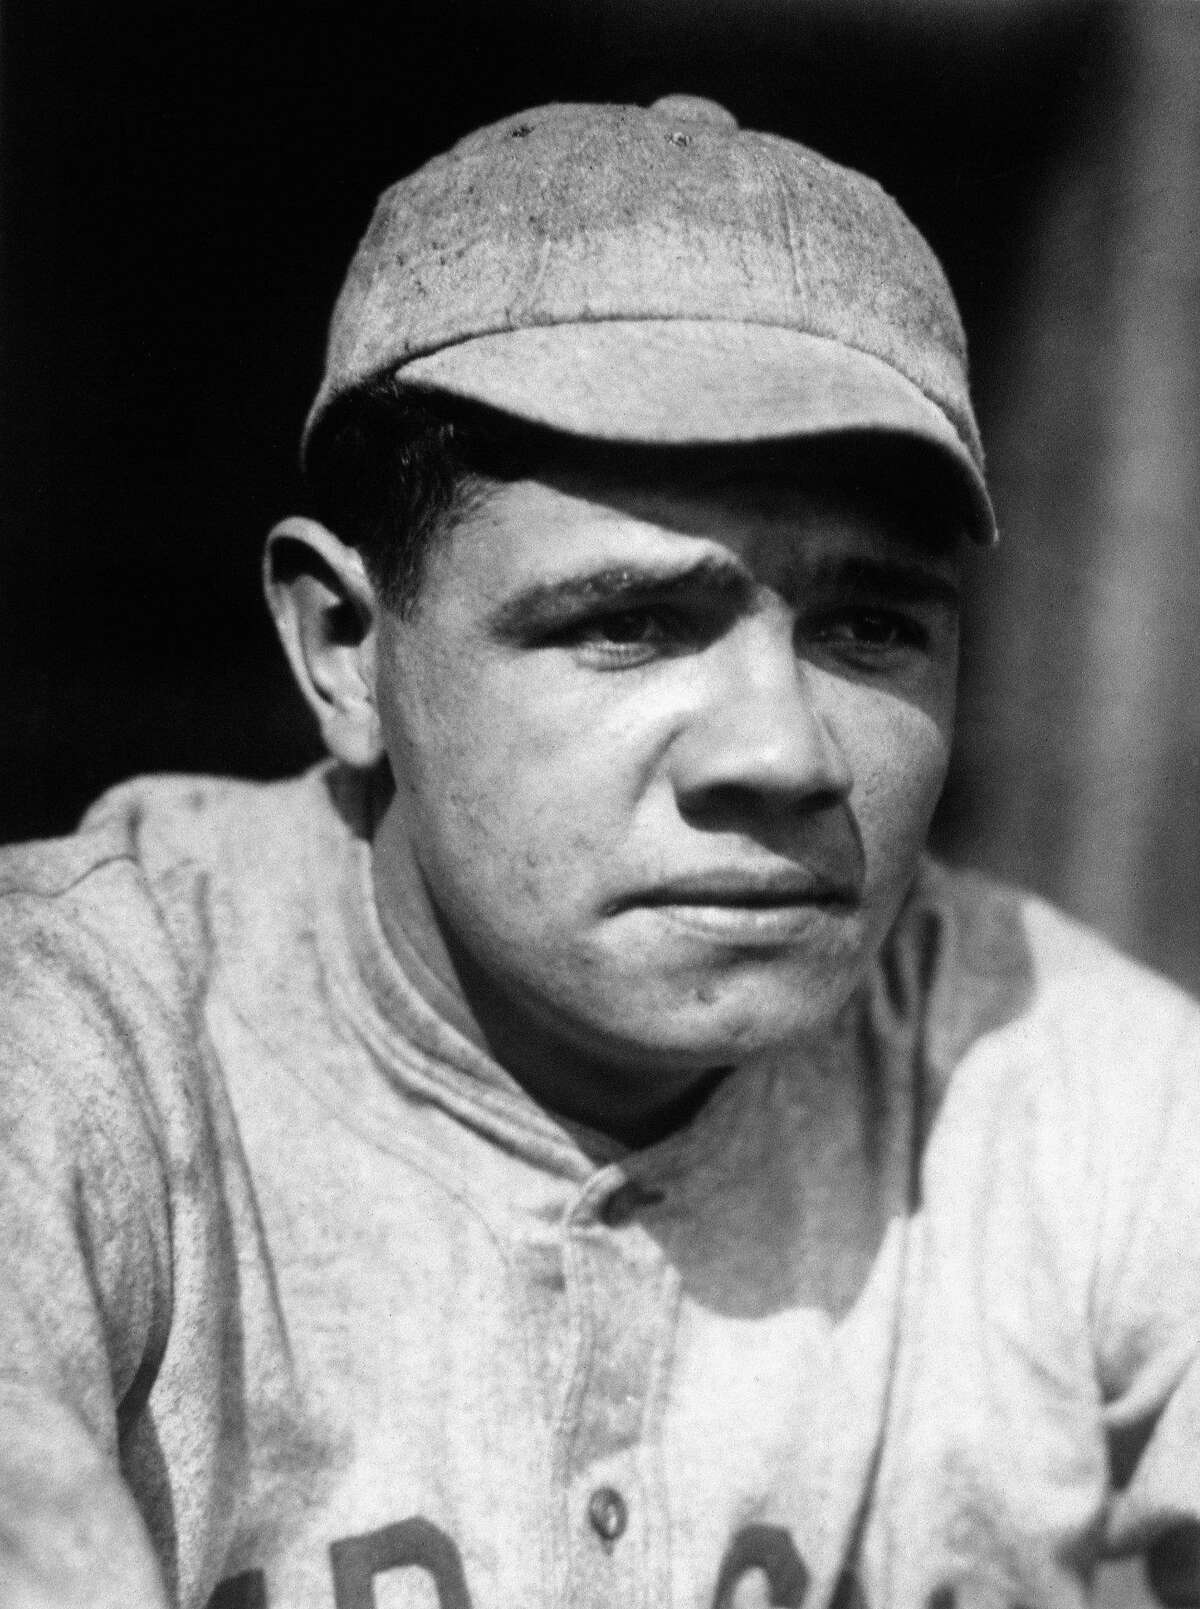 1918: Portrait of pitcher Babe Ruth, of the Boston Red Sox, circa 1918. ~~